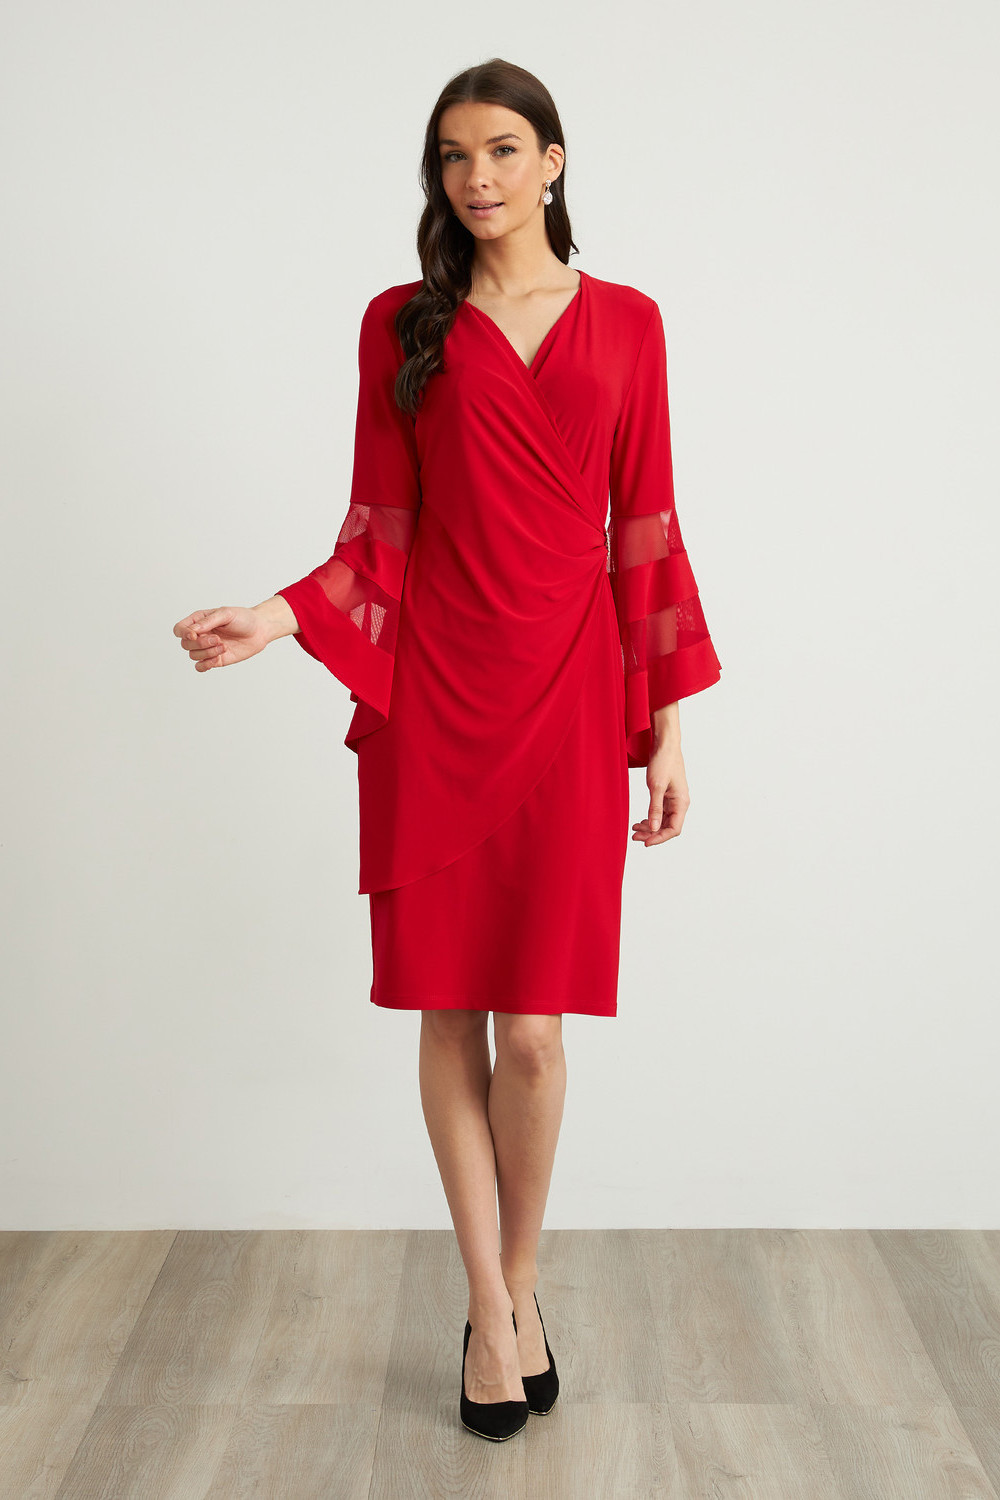 Joseph Ribkoff Robes Rouge A Levres 173 Style 211118